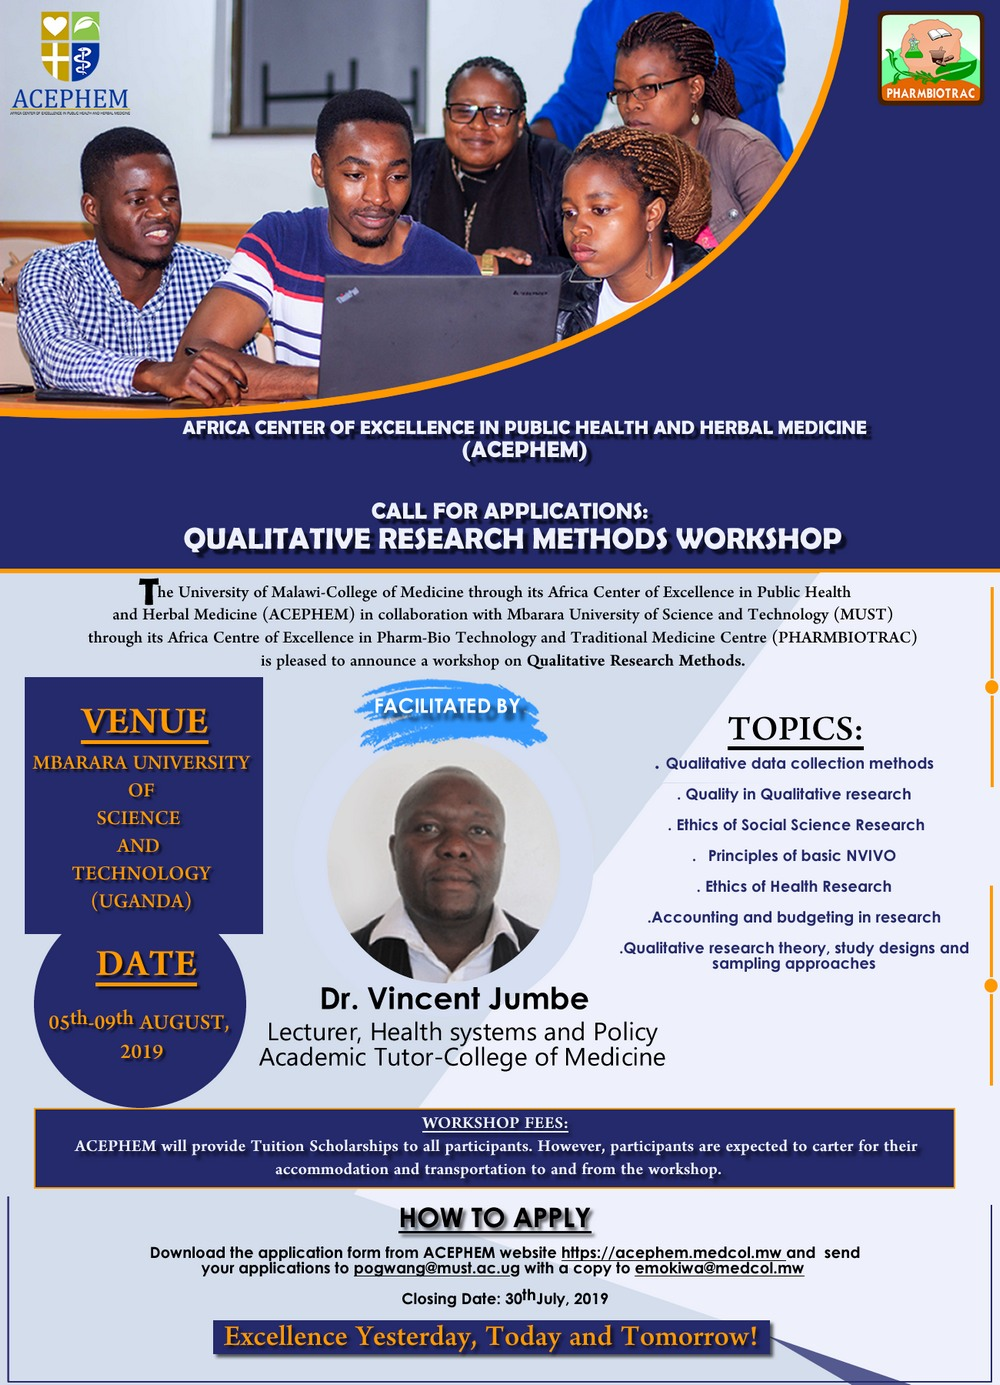 Qualitative Research Methods Workshop – Call for Applications